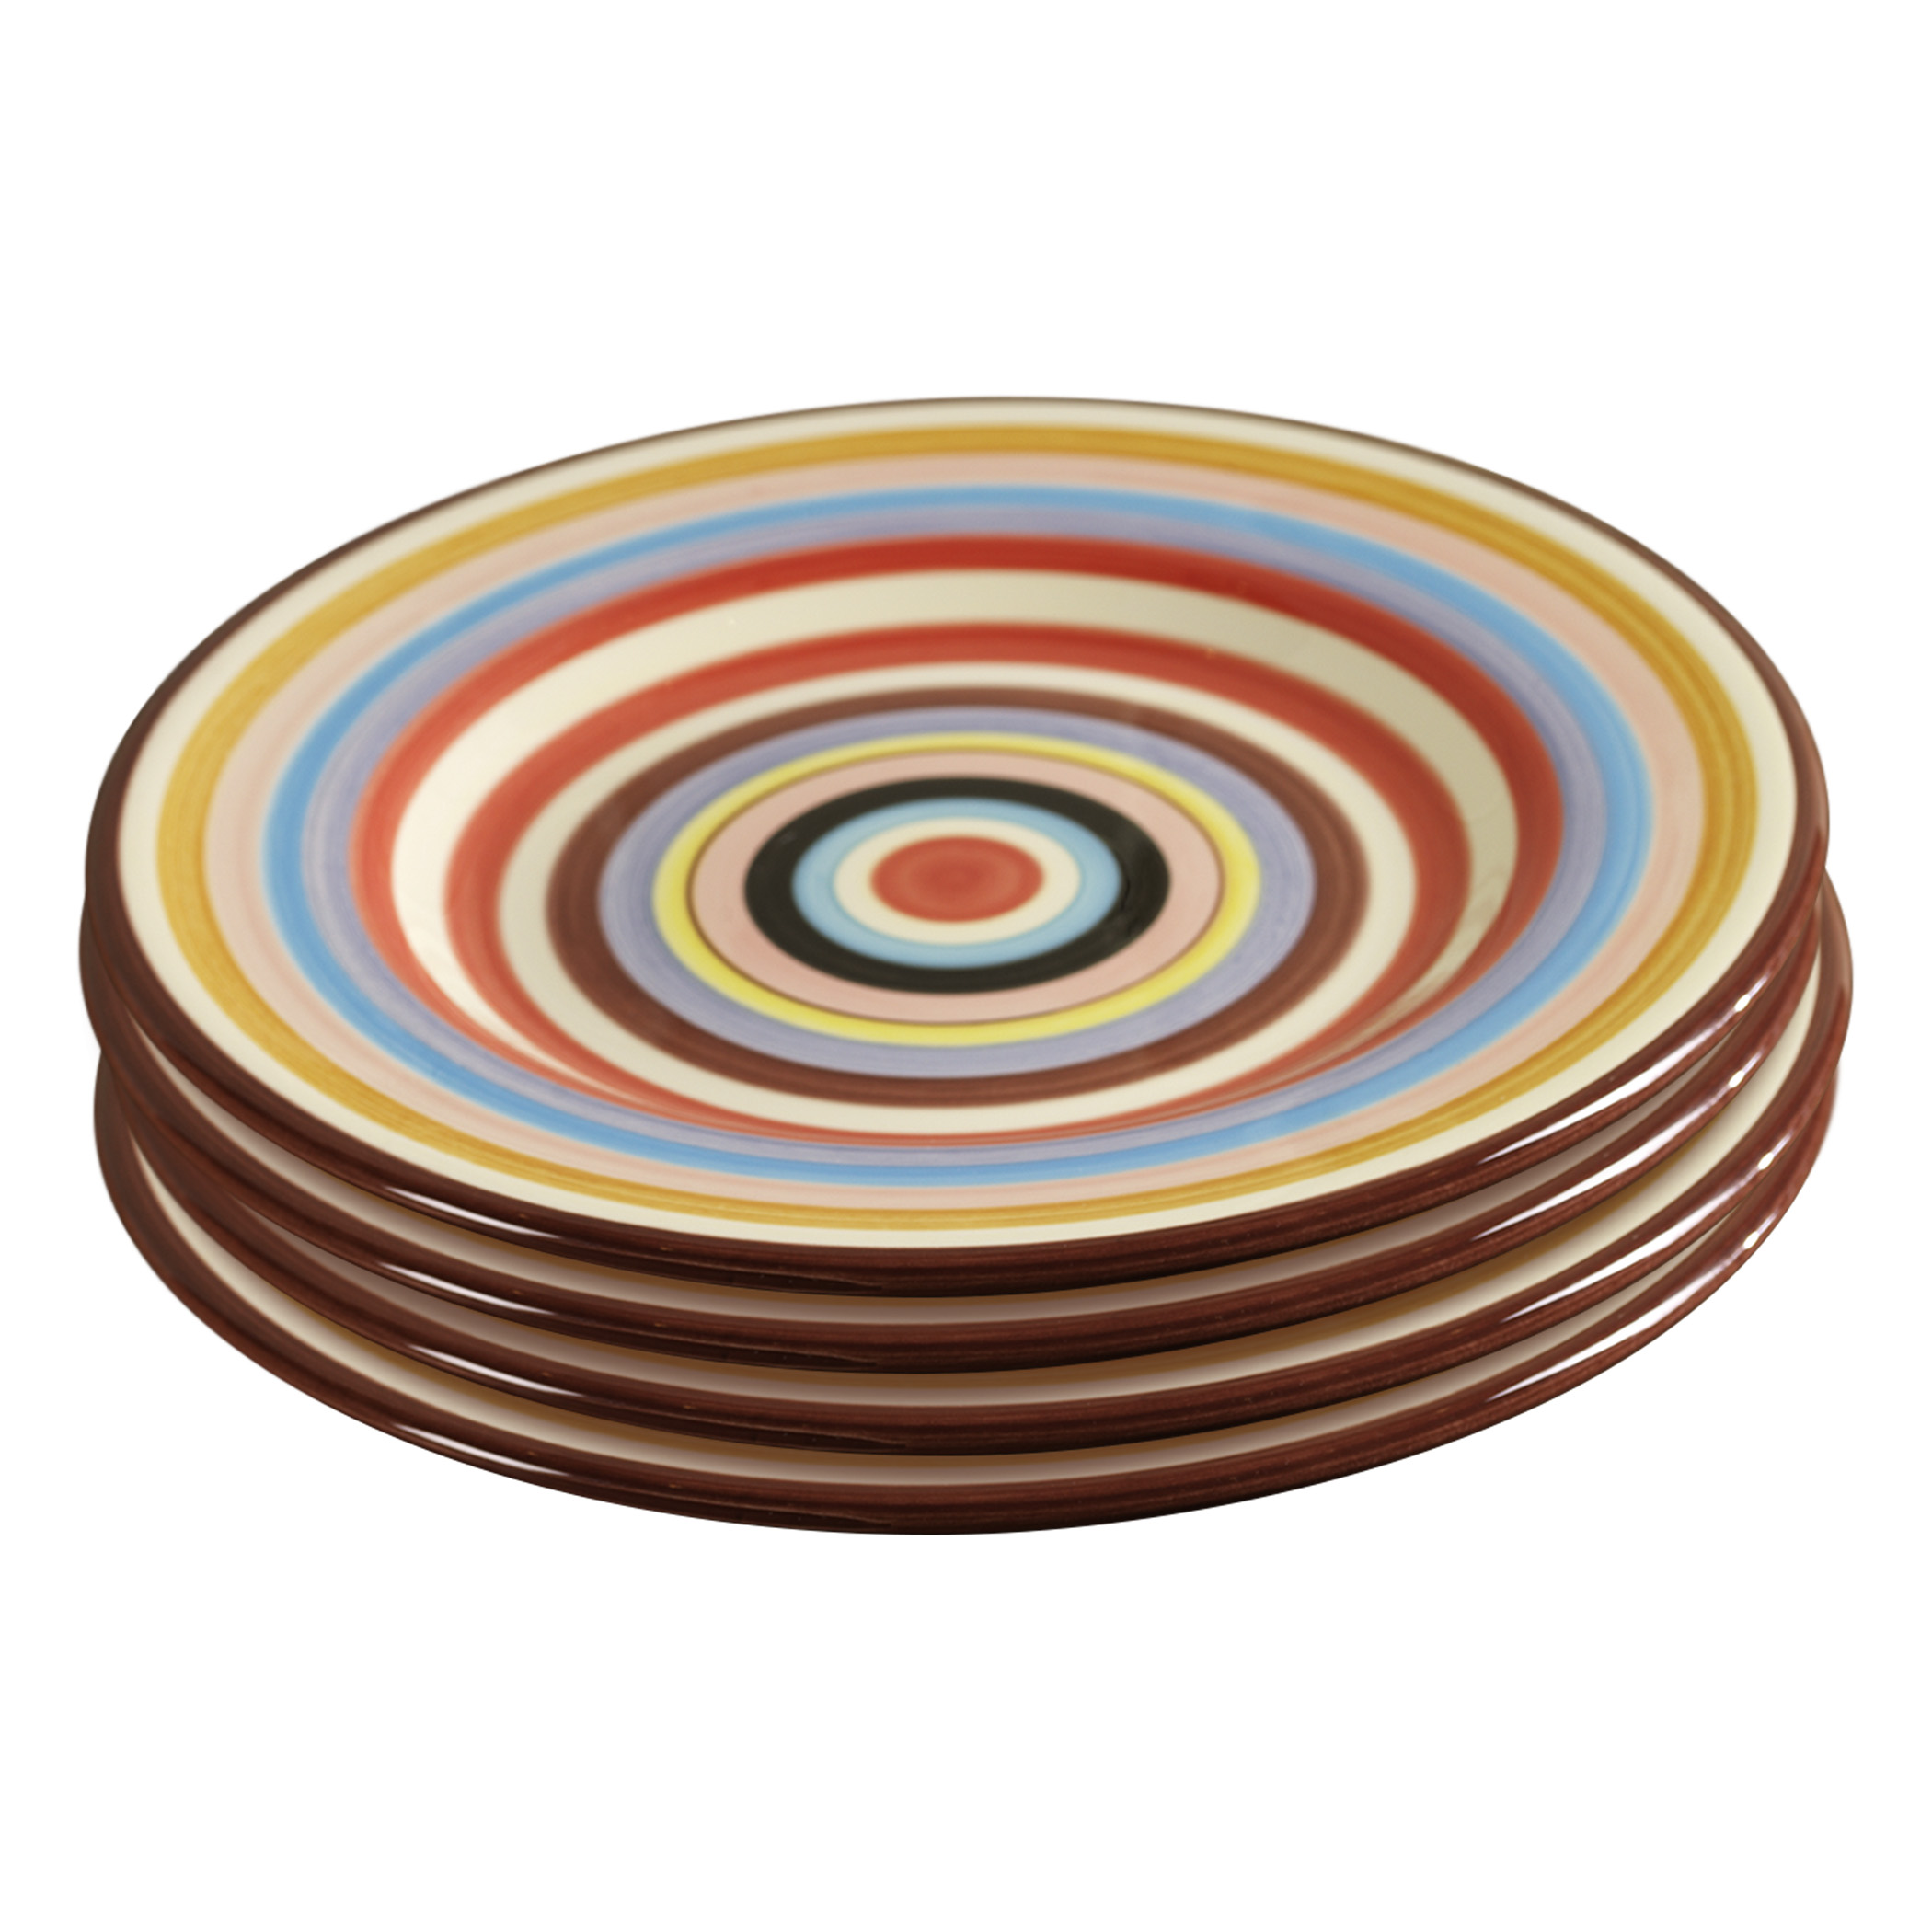 TMS-M6801-EC-Sedona Set of Four 11.5 Inch Ceramic Dinner Plates by  sc 1 st  Tabletops Unlimited : plates ceramic - pezcame.com